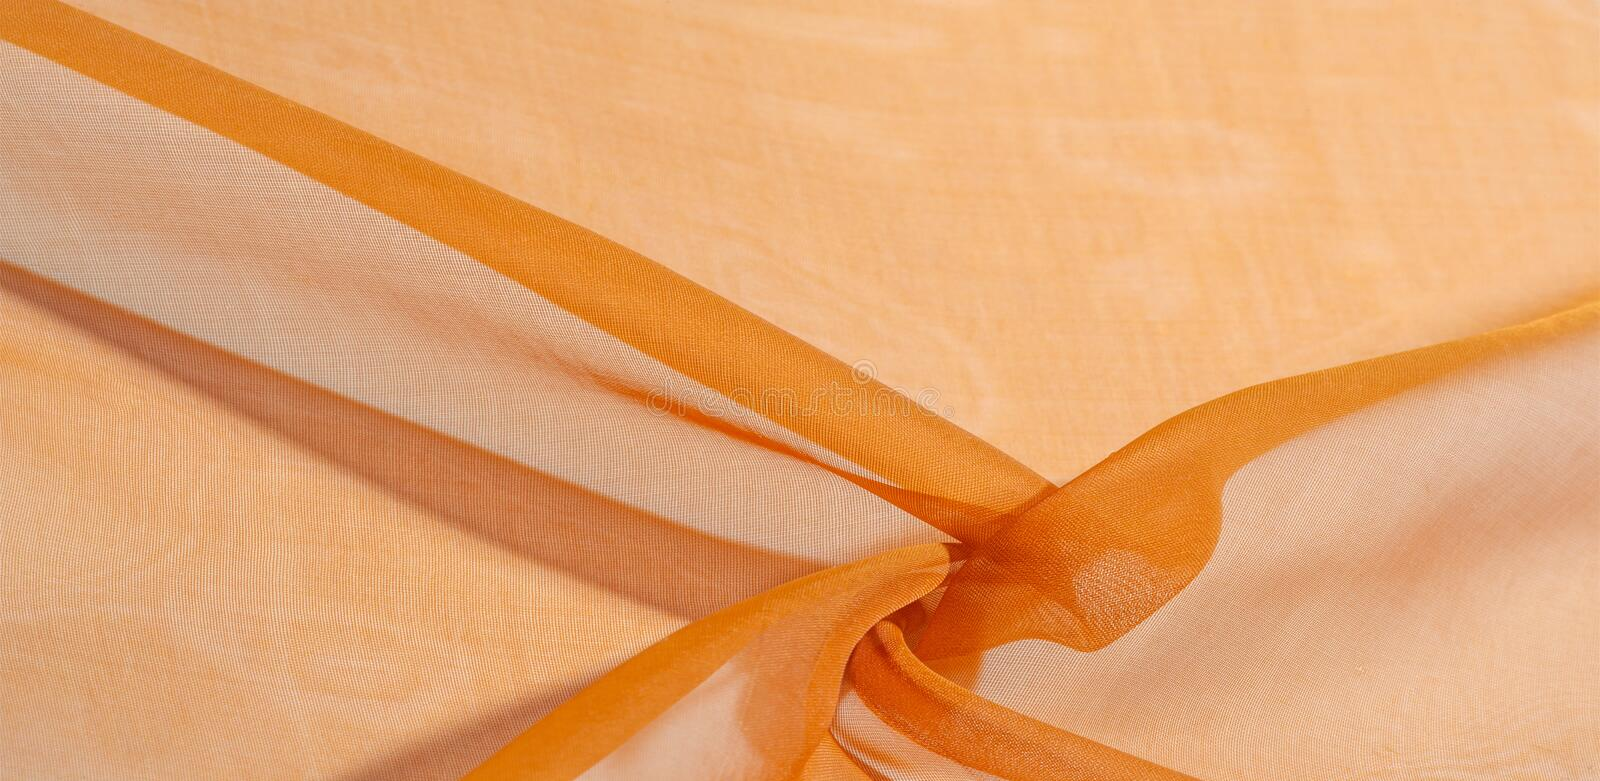 Texture background pattern Brown Silk This exquisite Dupioni silk fabric has a magnificent subtle sheen, full drape and minimal. Maces. It is also perfect for stock image